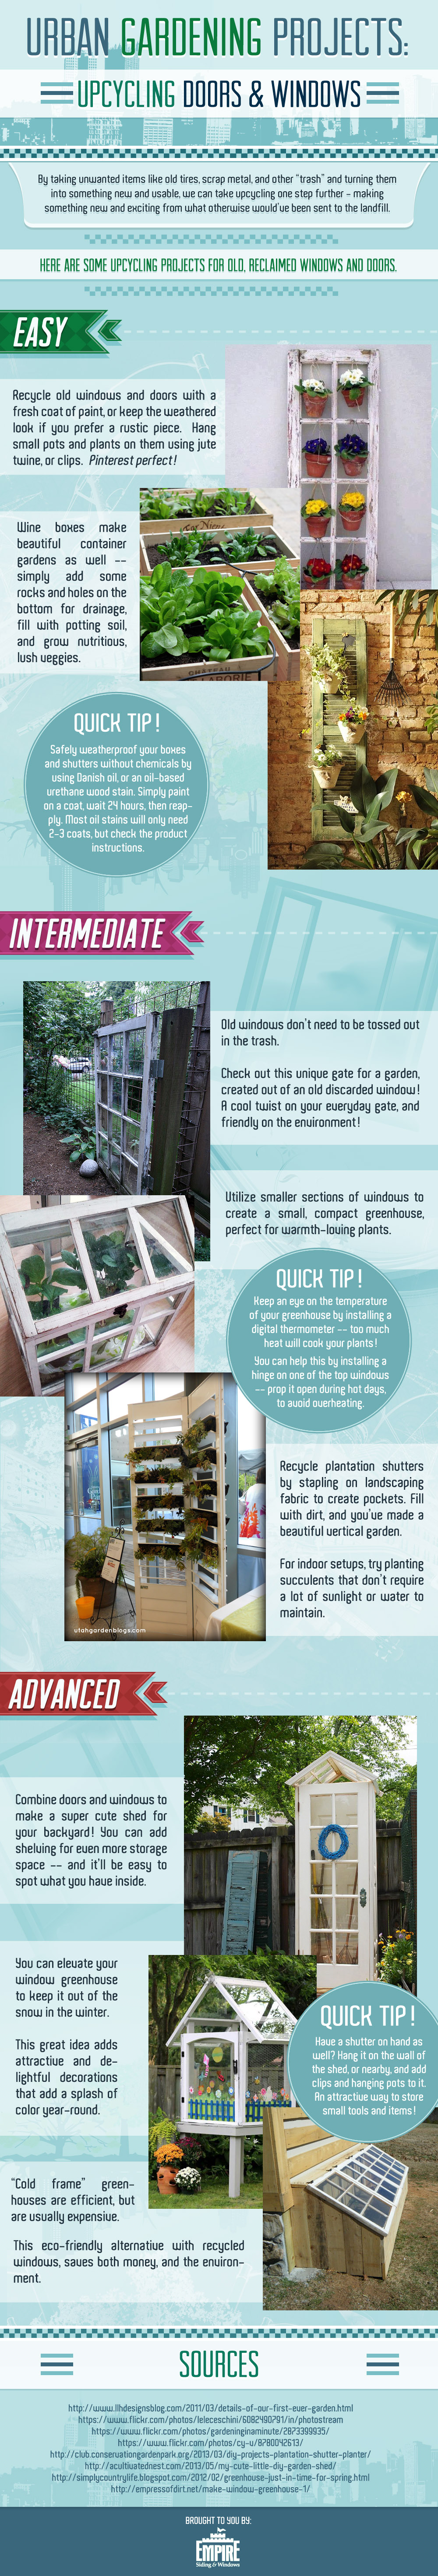 Upcycling Windows & Doors: Wintertime Gardening Projects